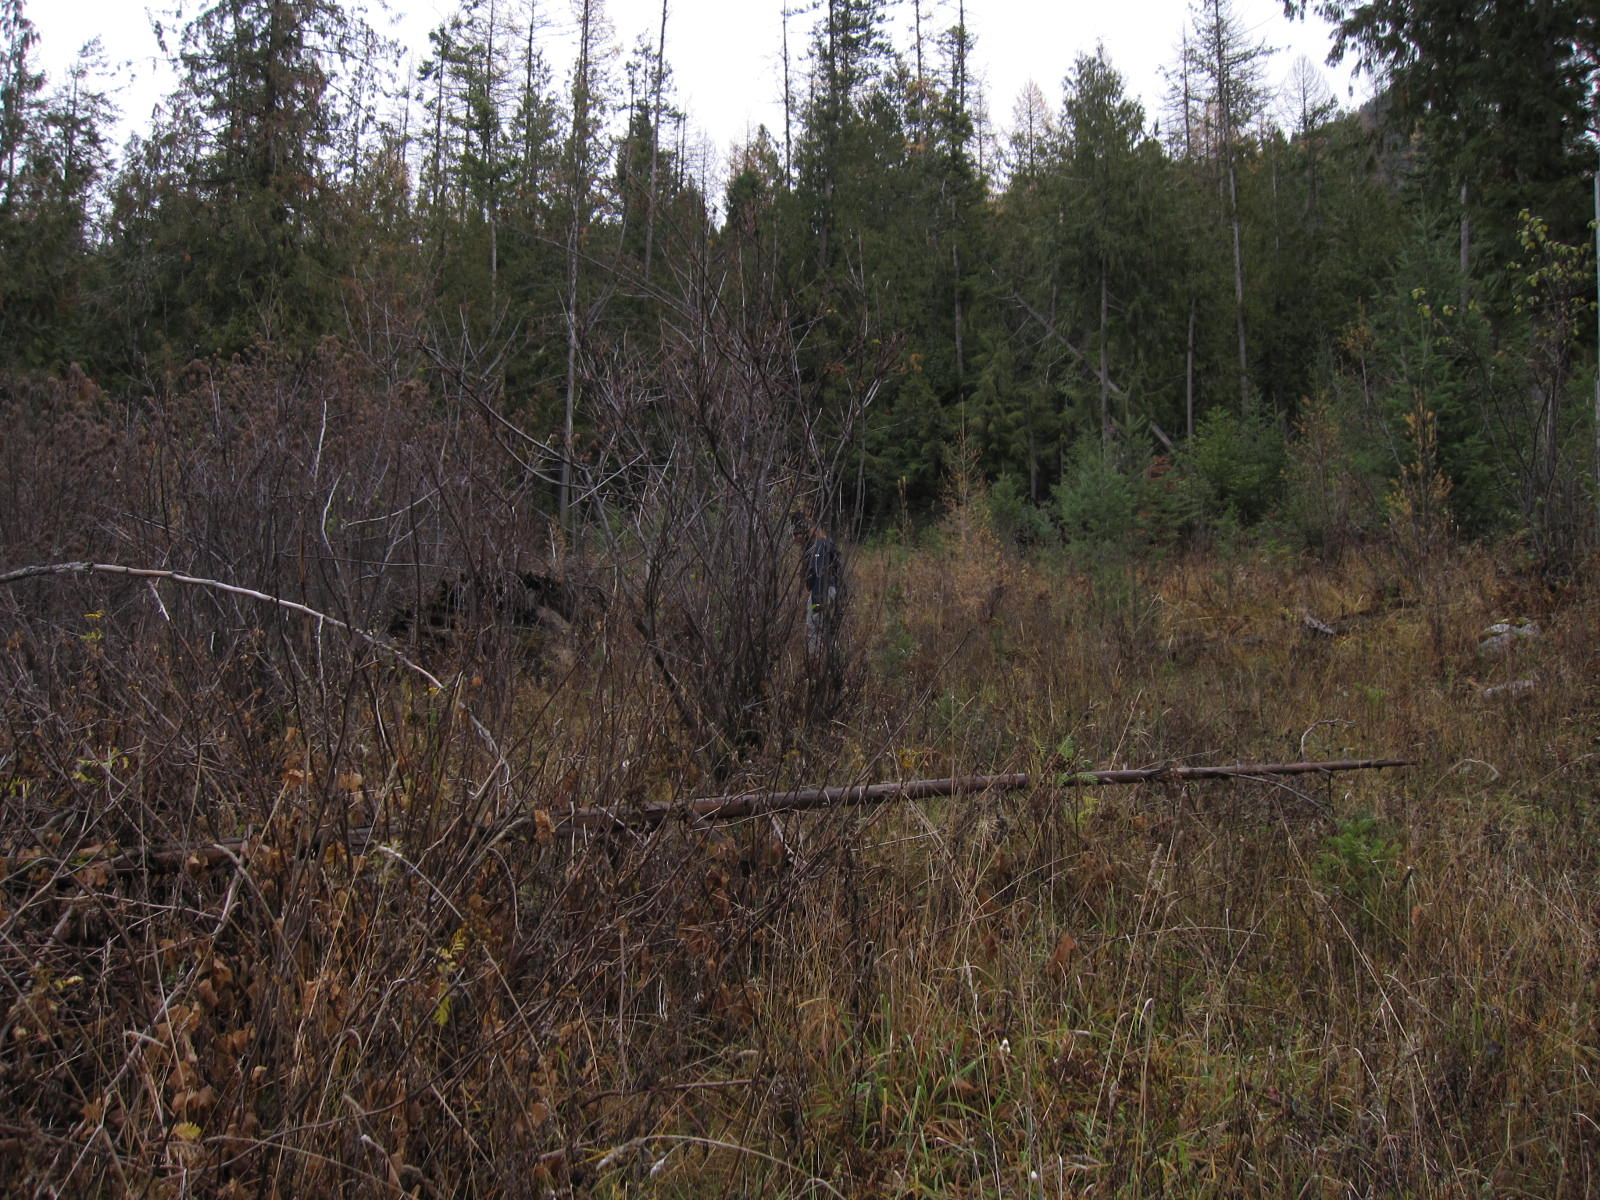 Terreno per Vendita alle ore Three lots bordering Forest Service with a small view of Lake Pend Oreille B3 L21-23 Pend Oreille Ave Bayview, Idaho, 83803 Stati Uniti